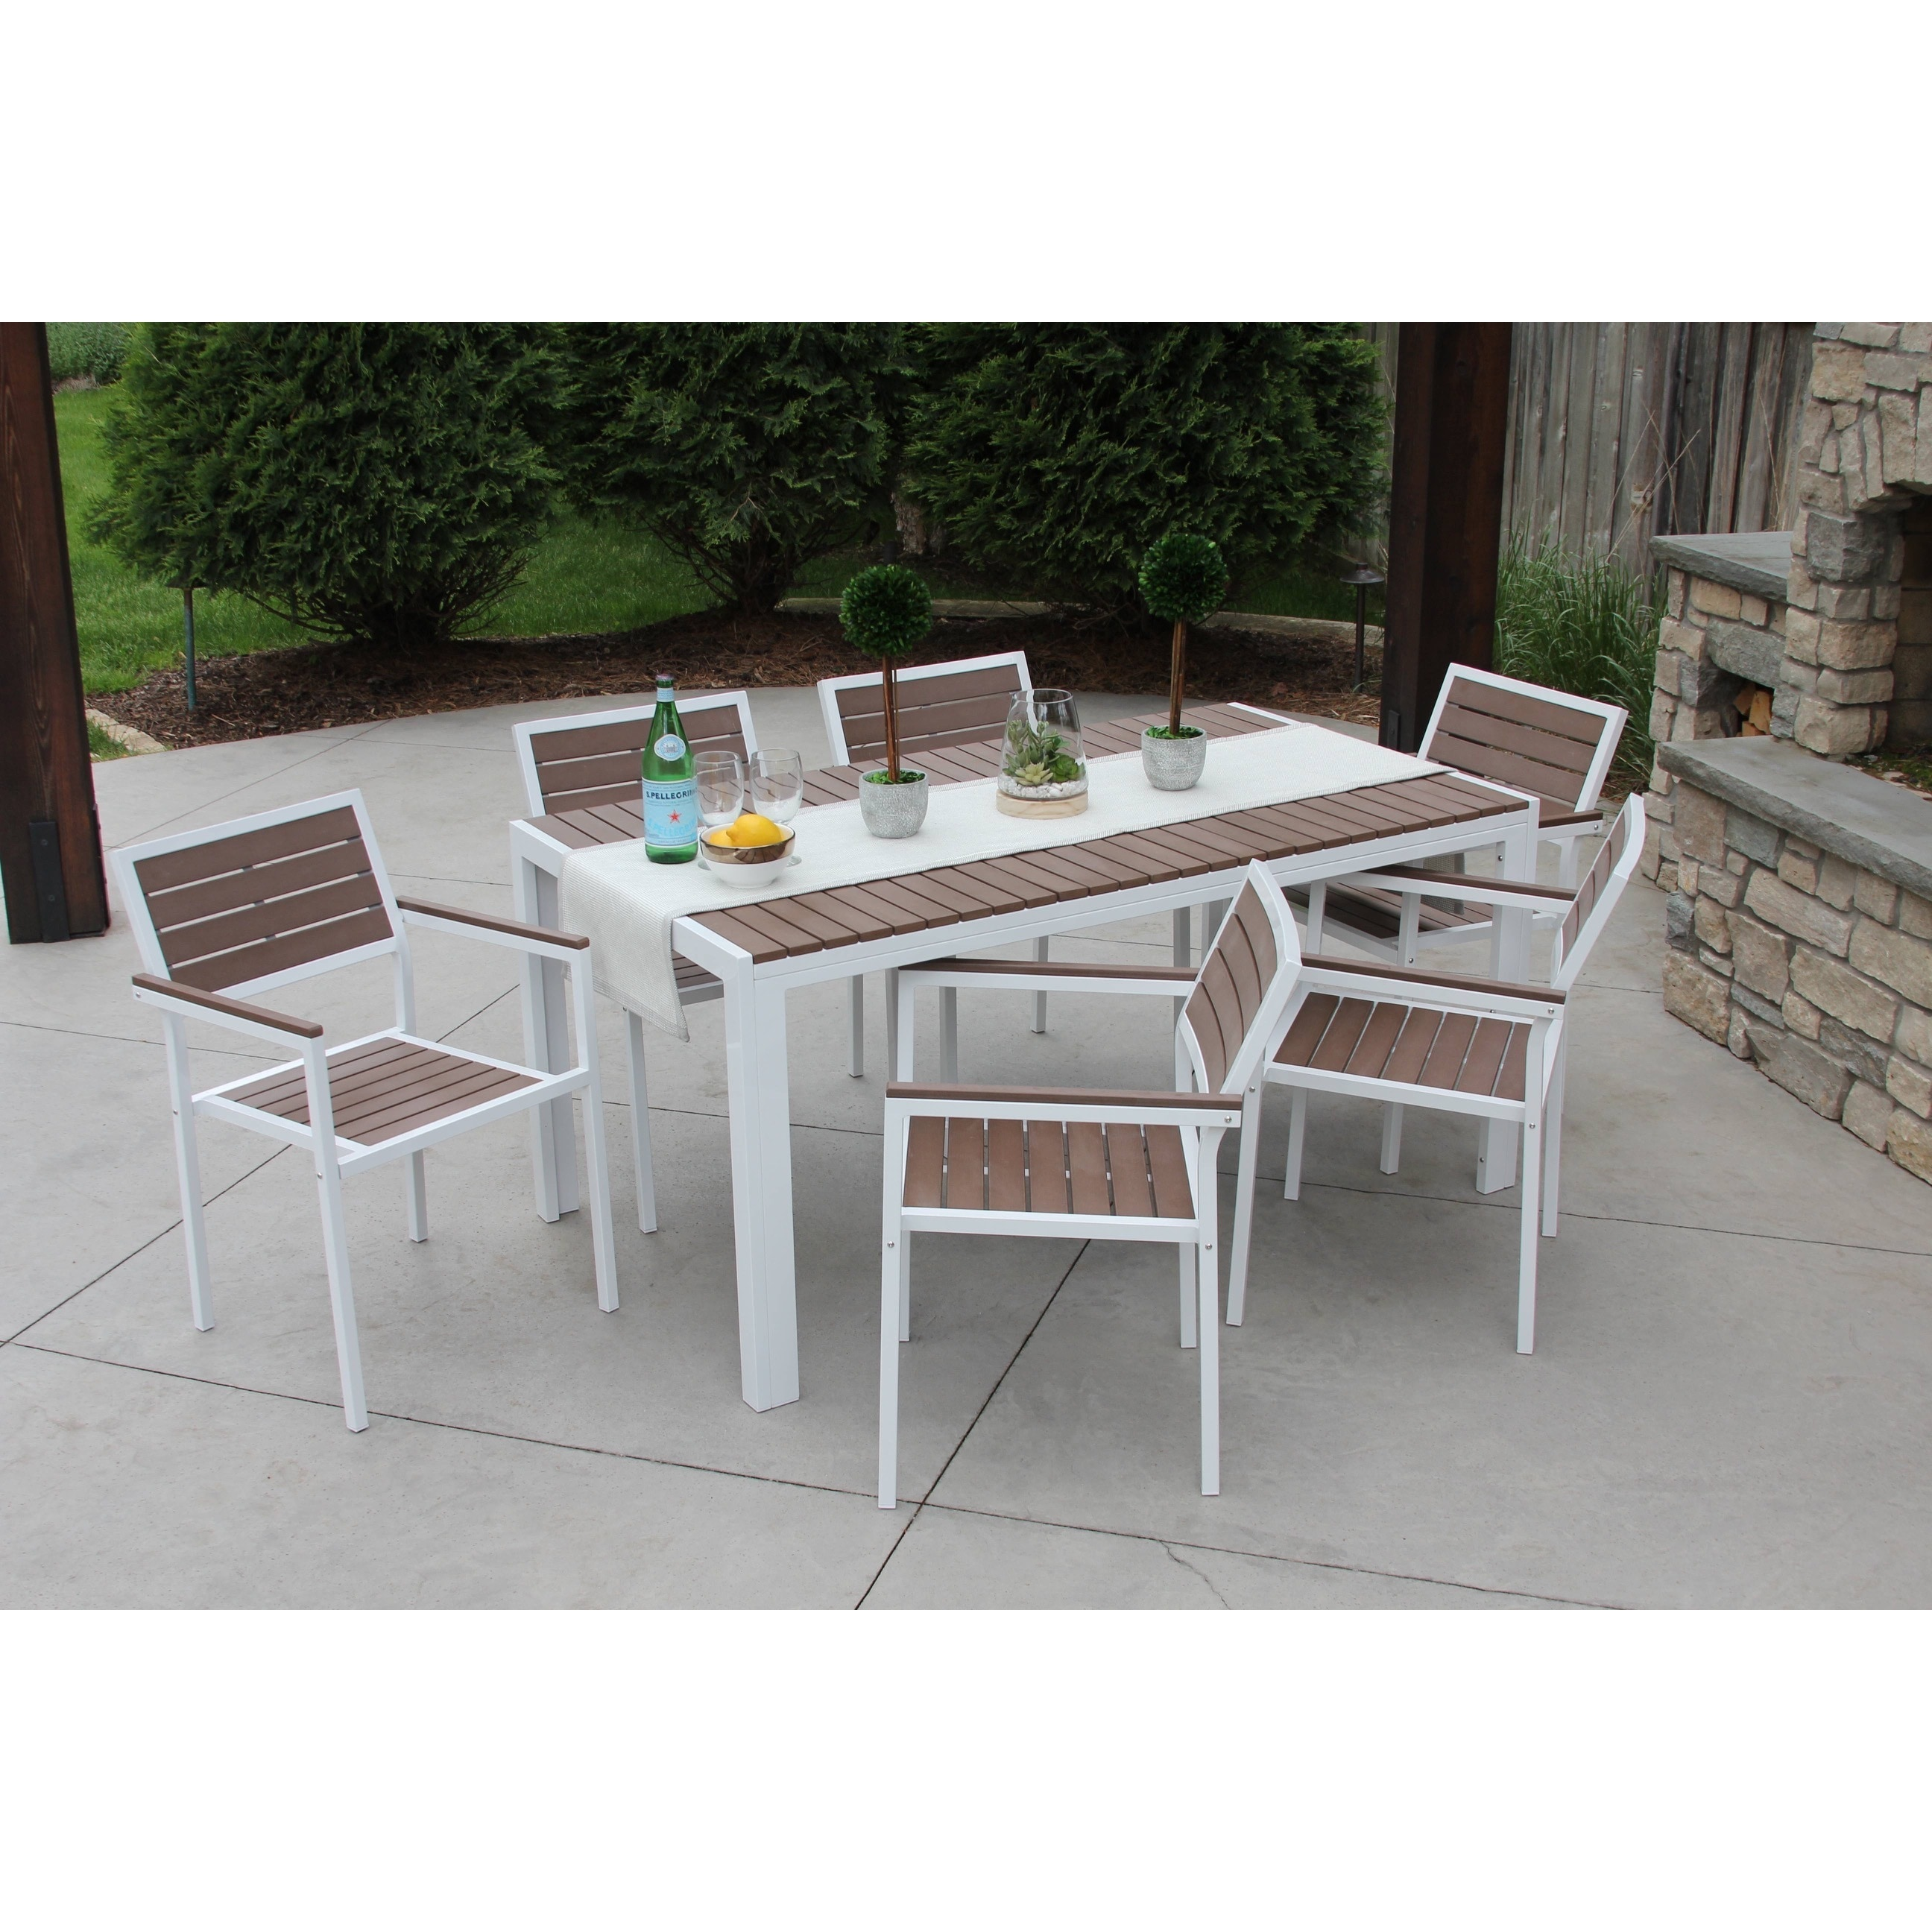 Shop Discontinued 7 Piece Outdoor Patio Dining Set Winston White Bay